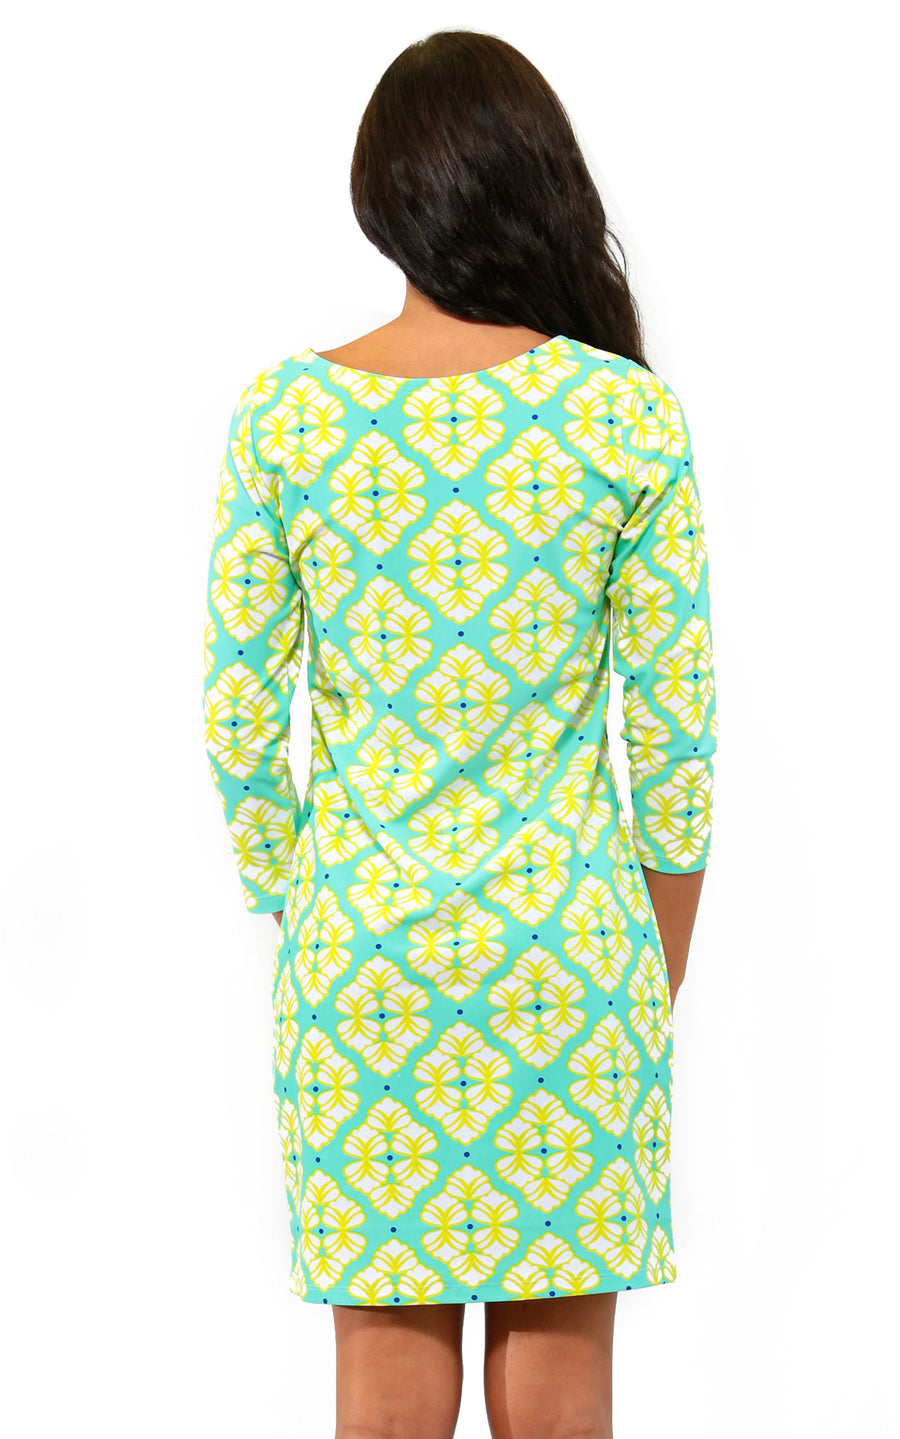 All For Color-Lime A Rita Lakeside Drive Crew Neck Shift - FINAL SALE-Dresses